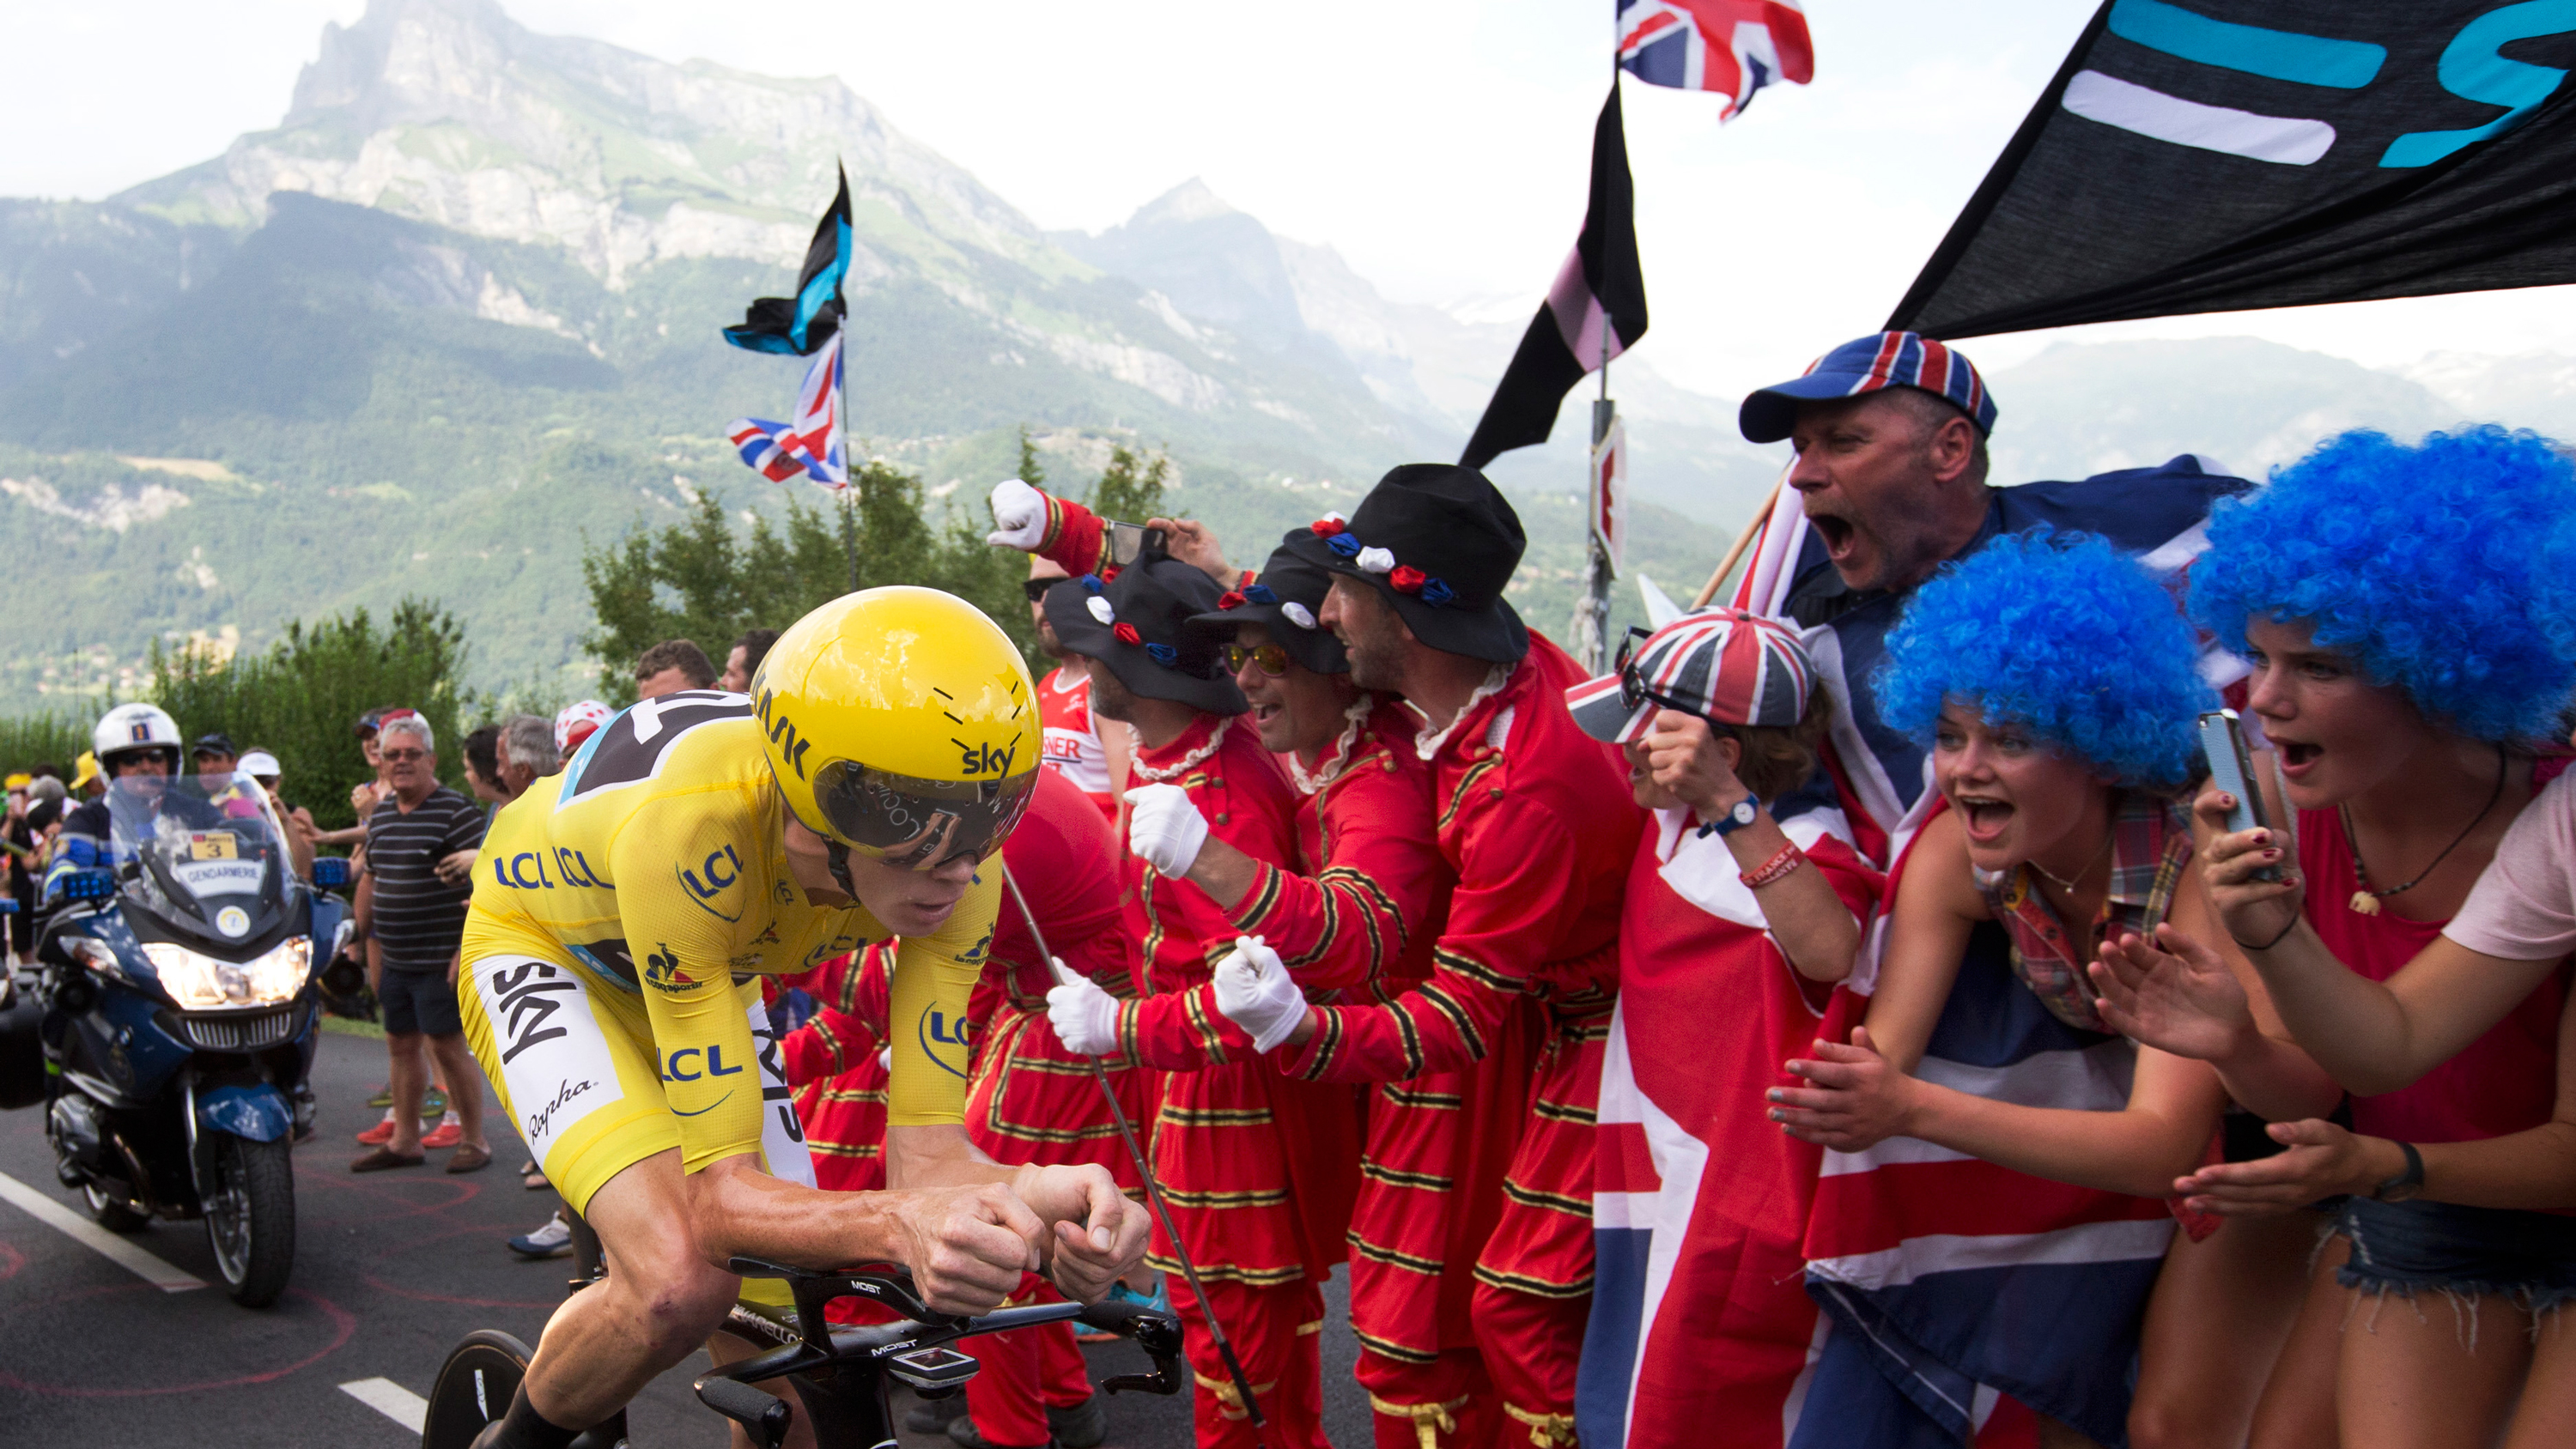 Chris Froome wins stage 18 and extends general classification lead